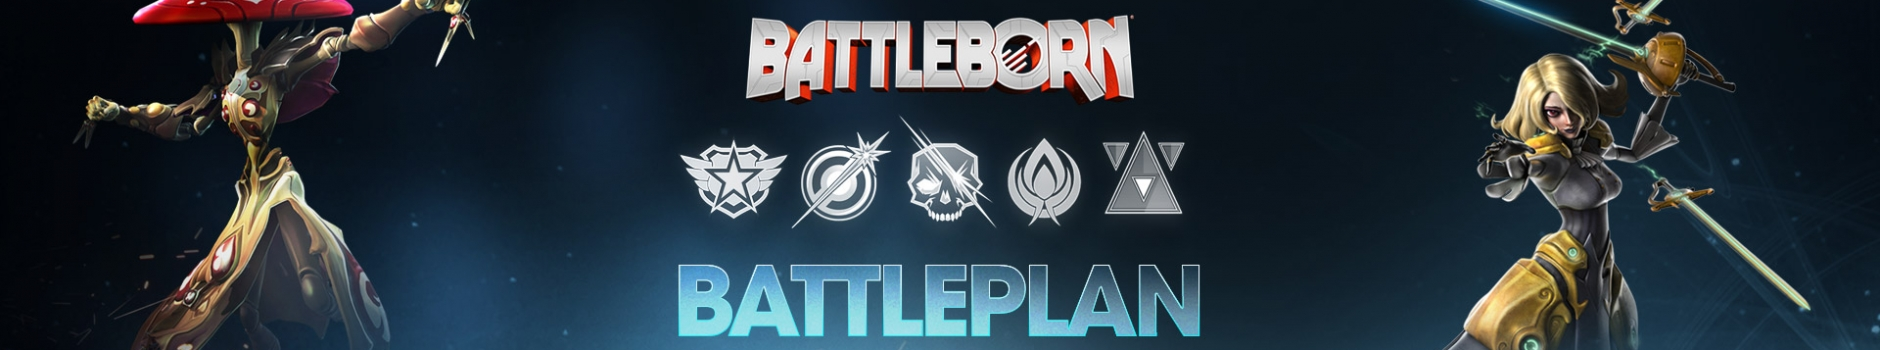 Battleplan 20: Lootpocalypse, Quick Match, Upcoming Livestream Details, and More!